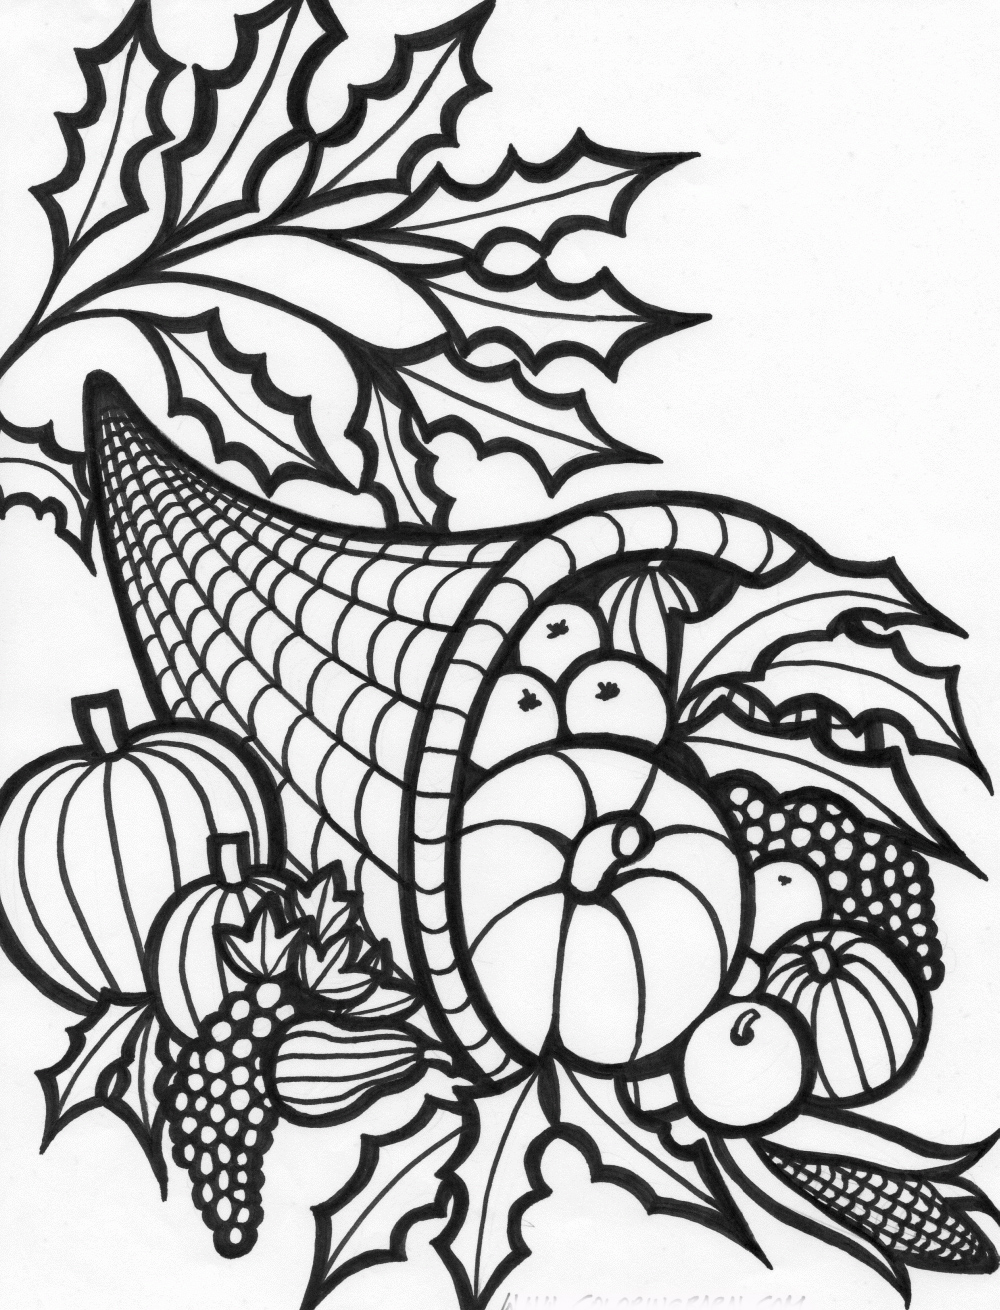 thanks giving coloring pages - photo #40